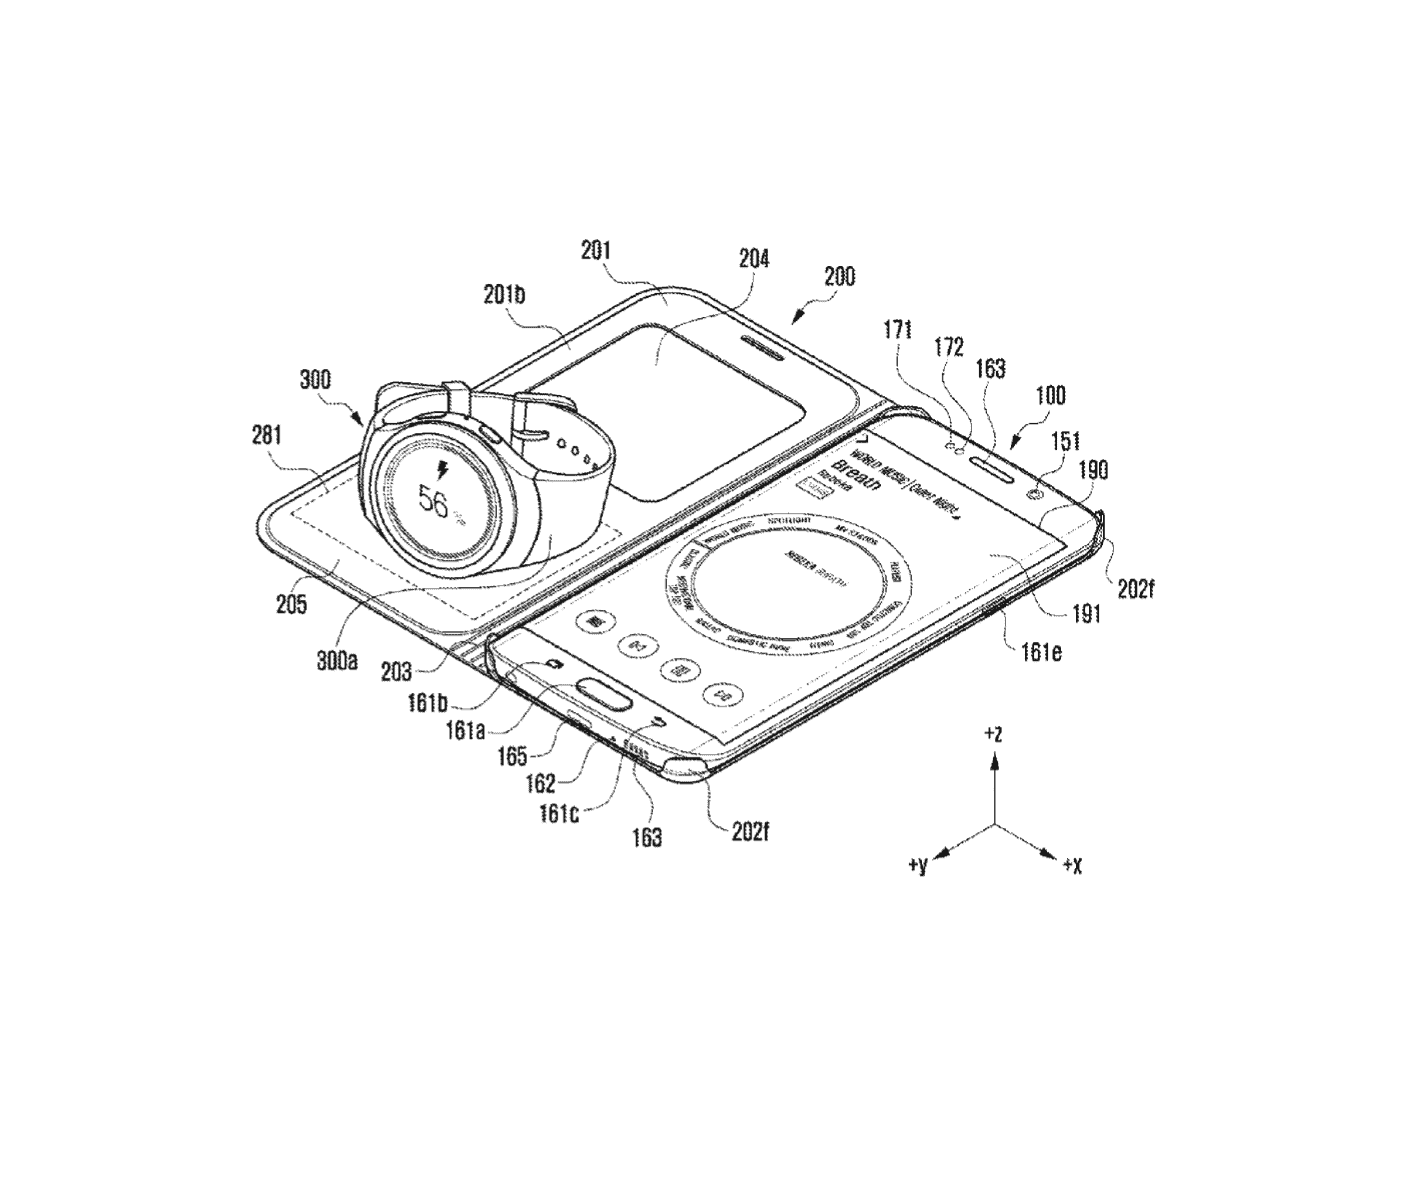 Samsung Wireless Charging Case Patents 7